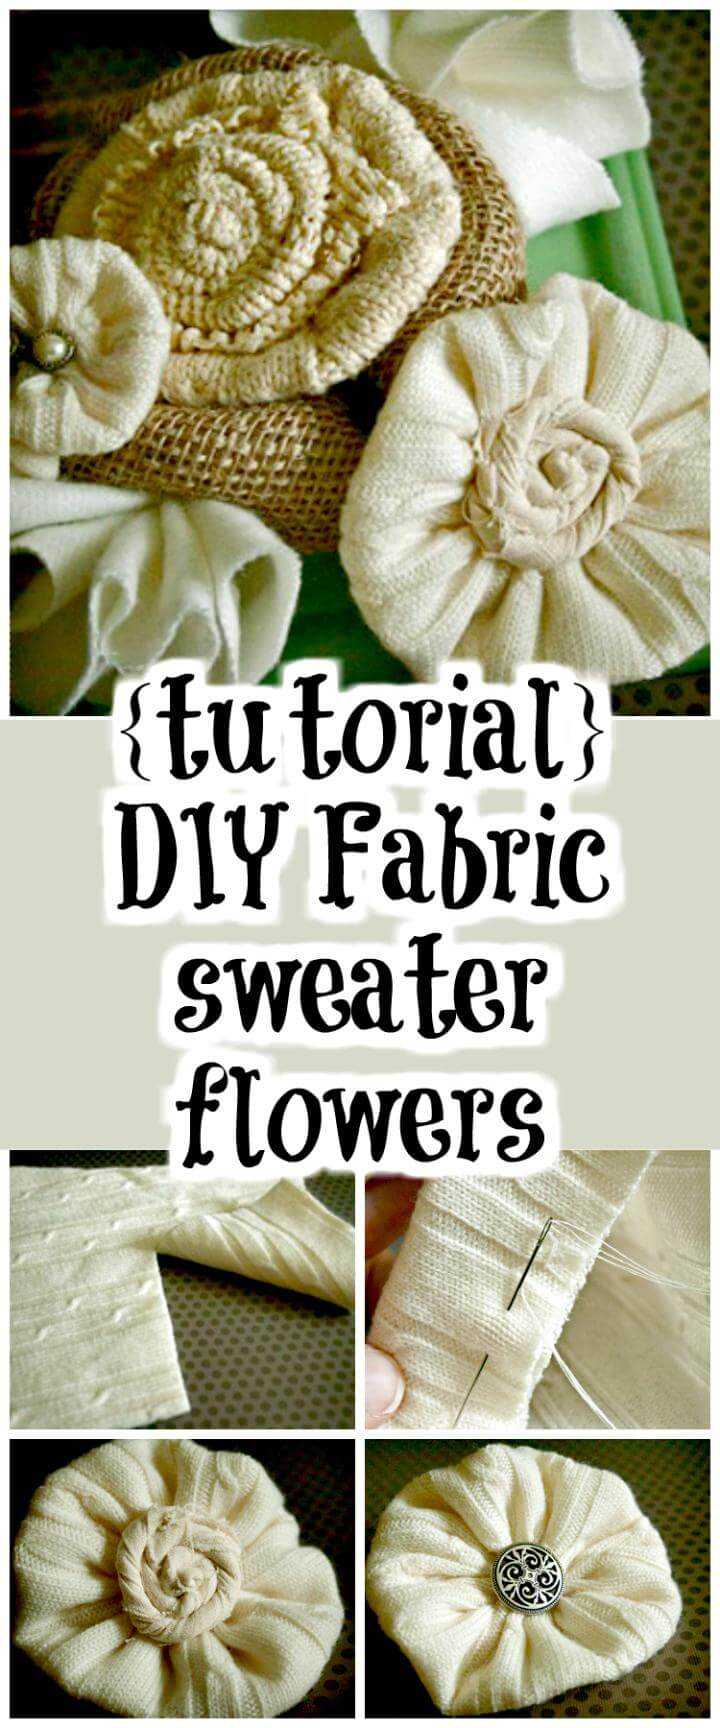 50 Easy Fabric Flowers Tutorial - Make Your Own Fabric ...